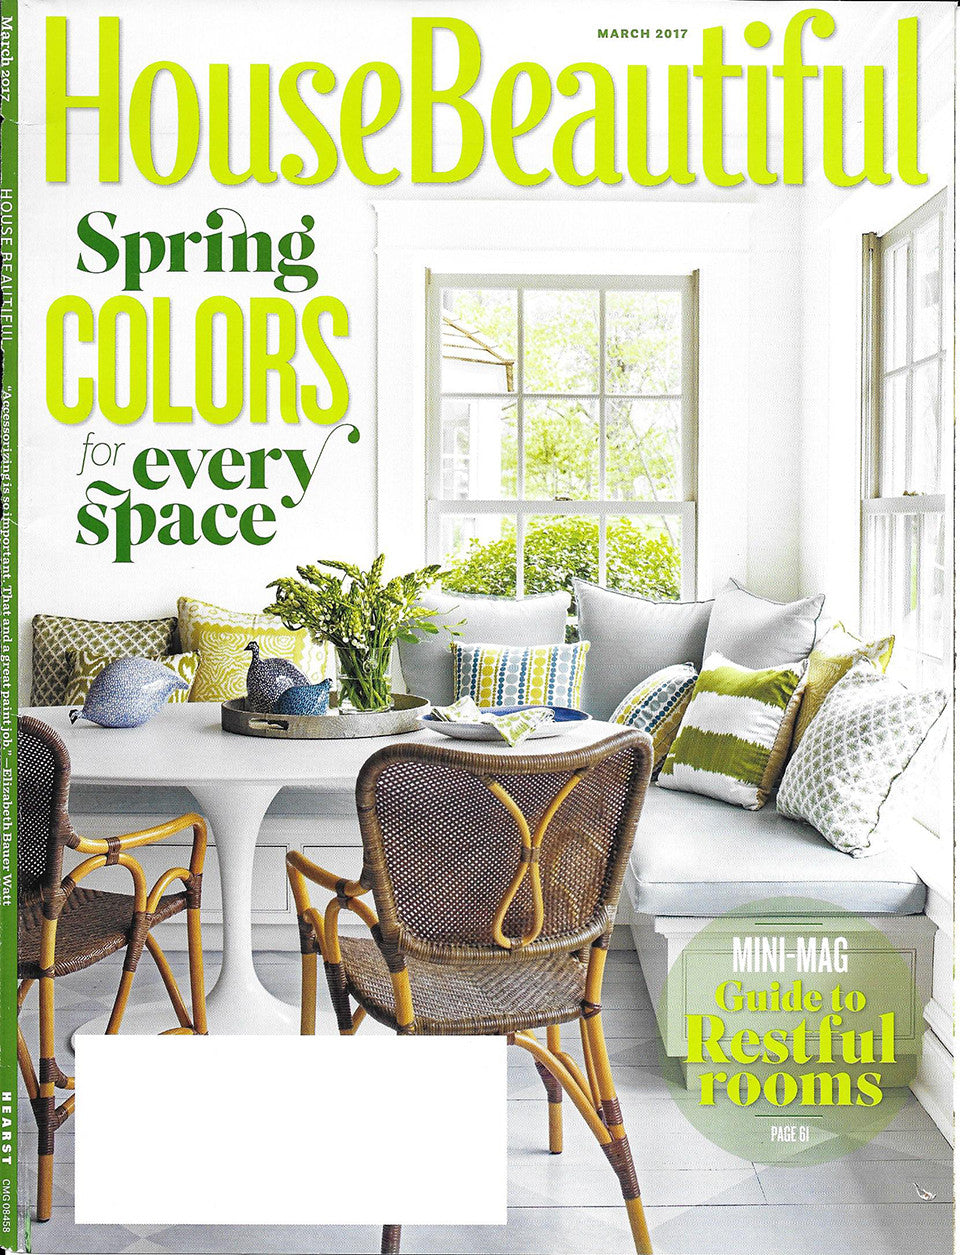 house beautiful magazine cover for march 2017